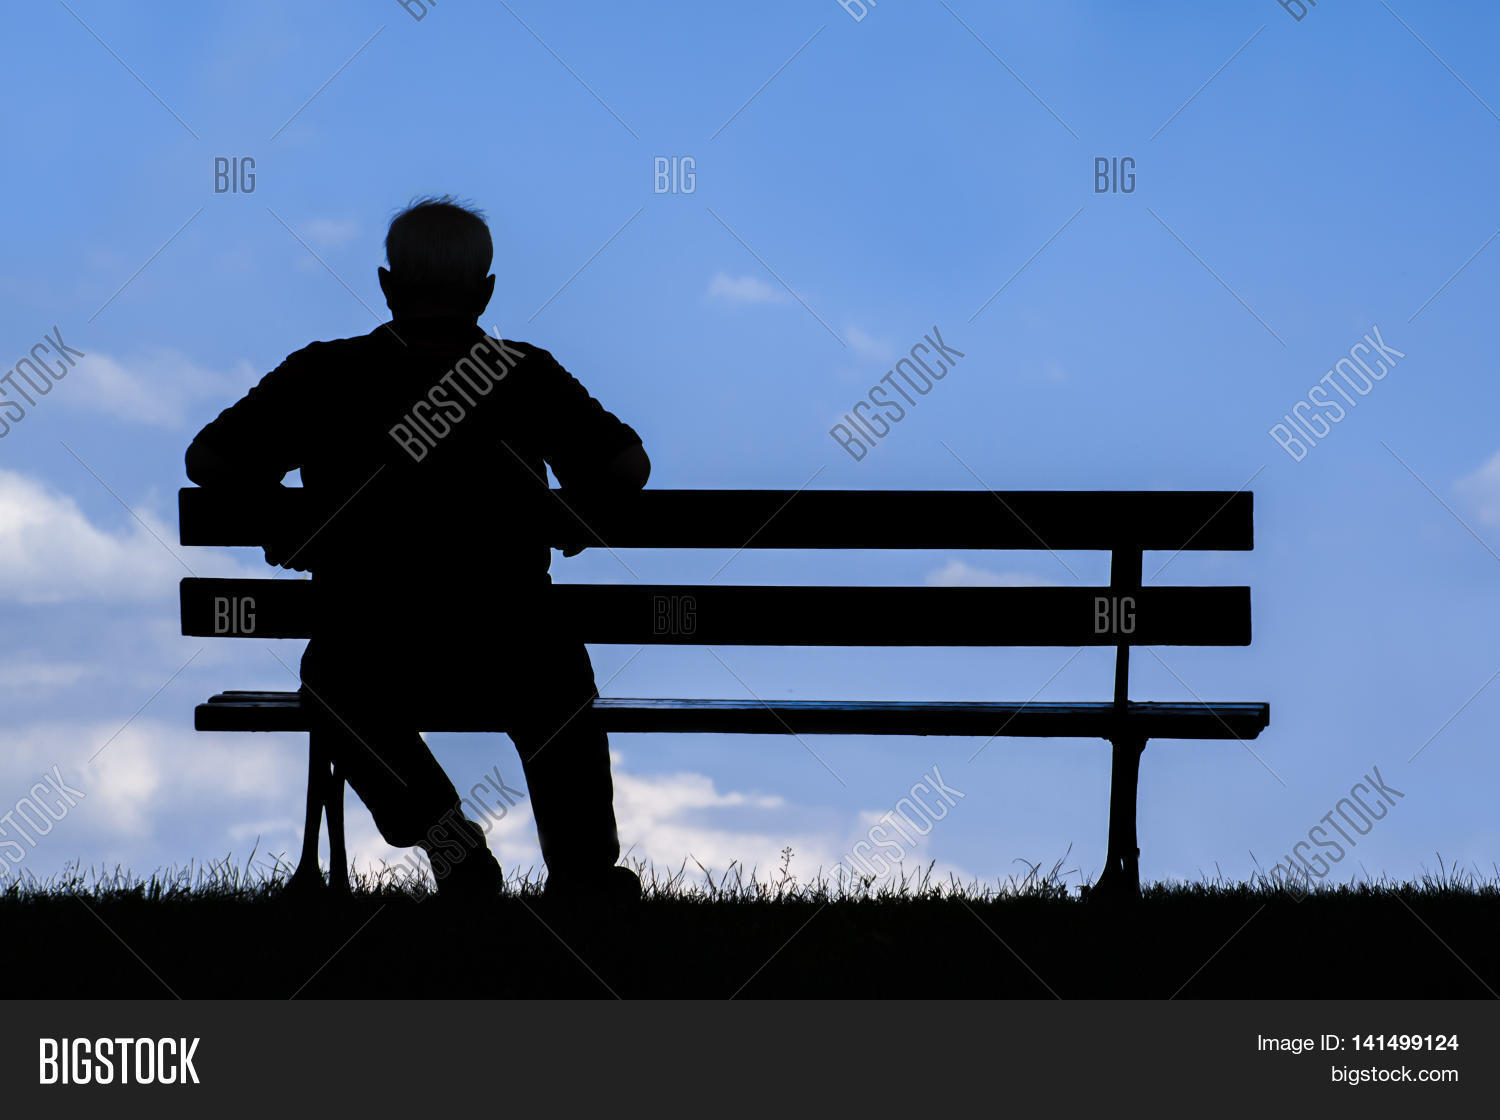 old man sitting alone image photo free trial bigstock